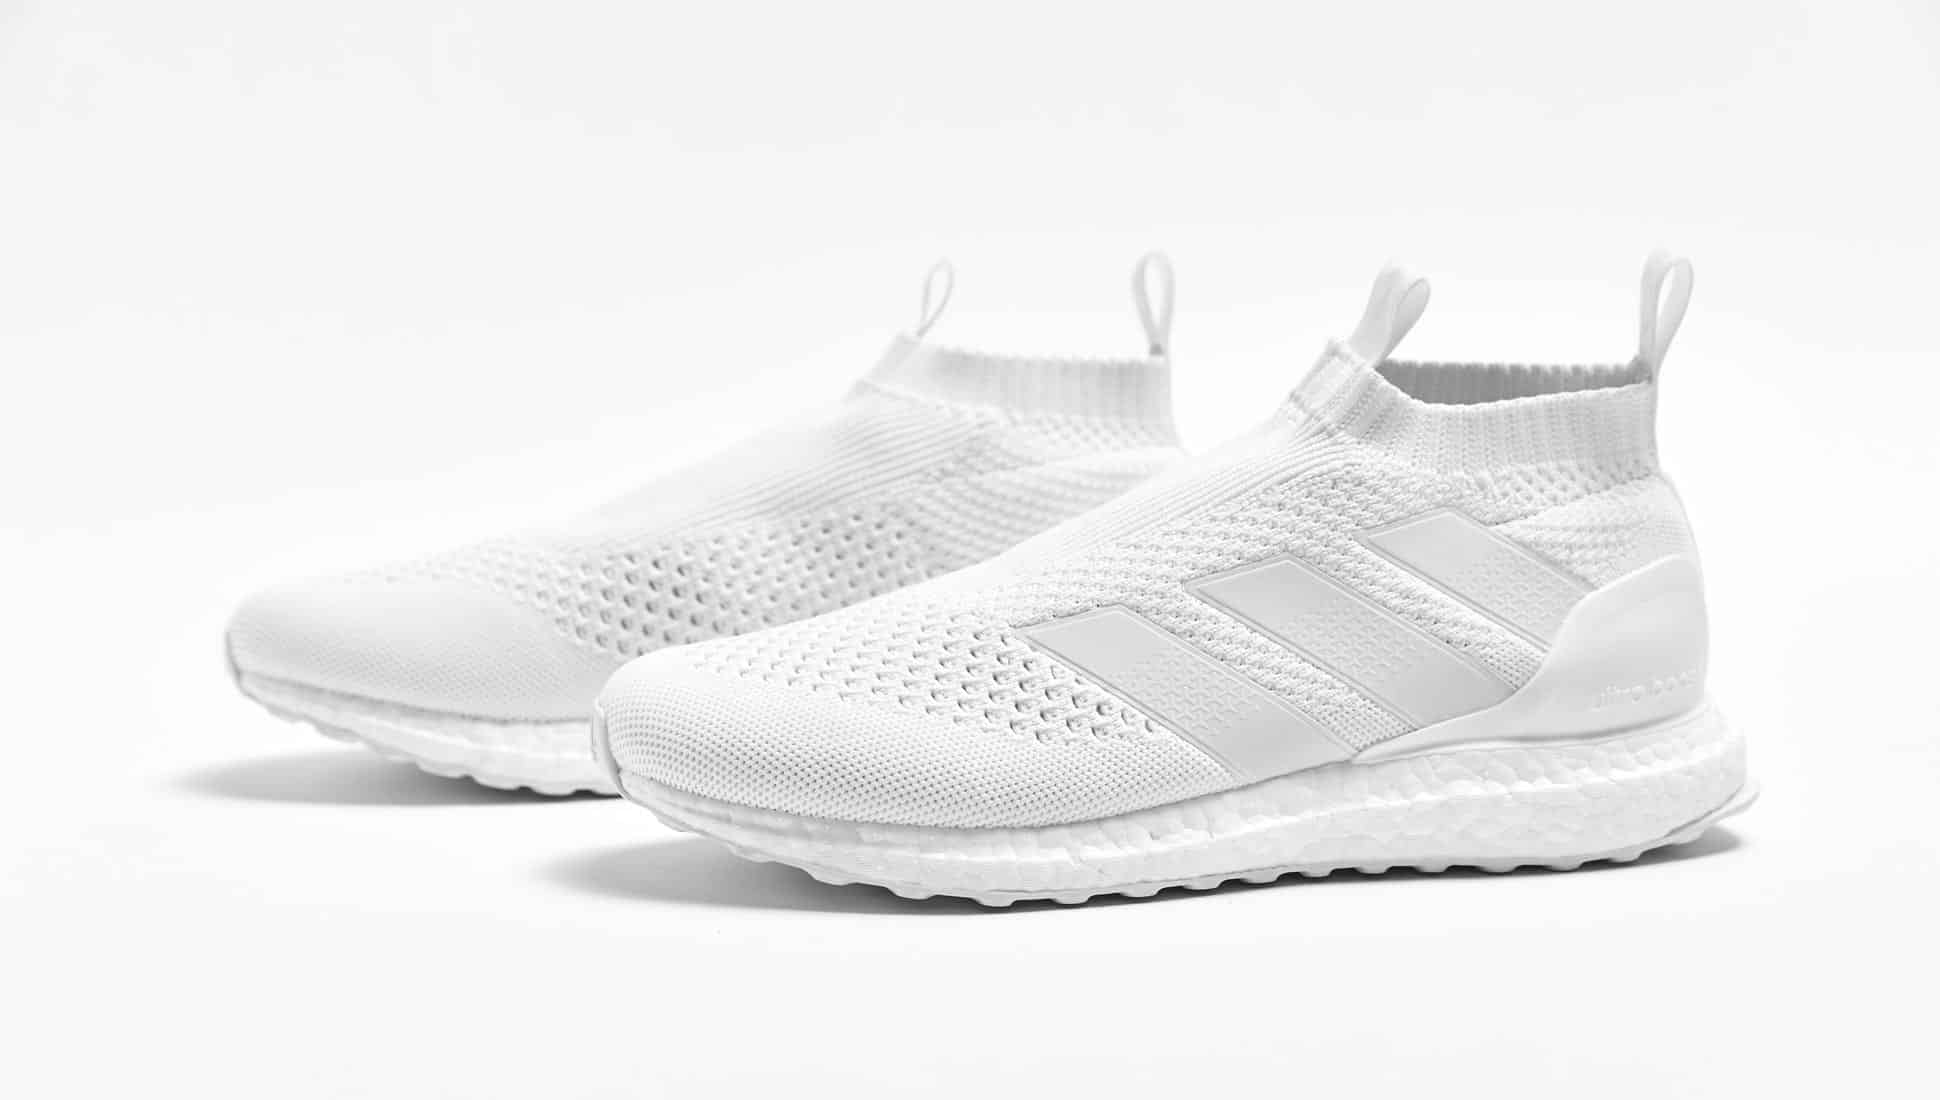 chaussures-lifestyle-adidas-ace16-purecontrol-ultraboost-img6